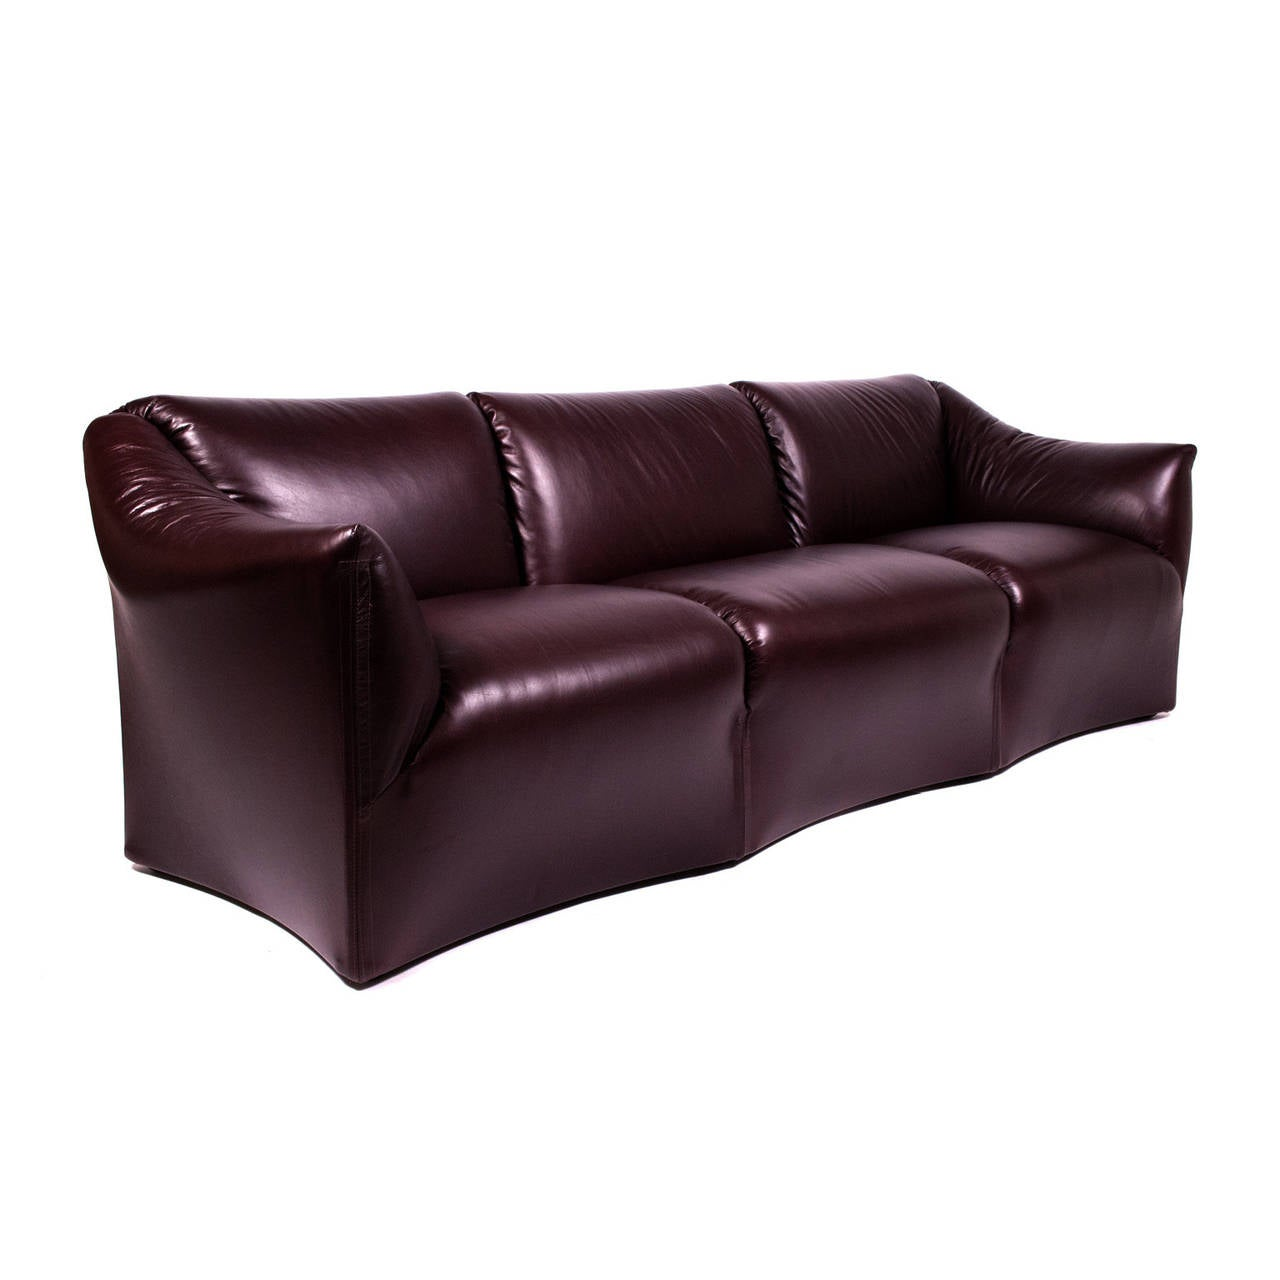 Fabulous Tentazione Sofa By Mario Bellini By Cassina At 1Stdibs Uwap Interior Chair Design Uwaporg